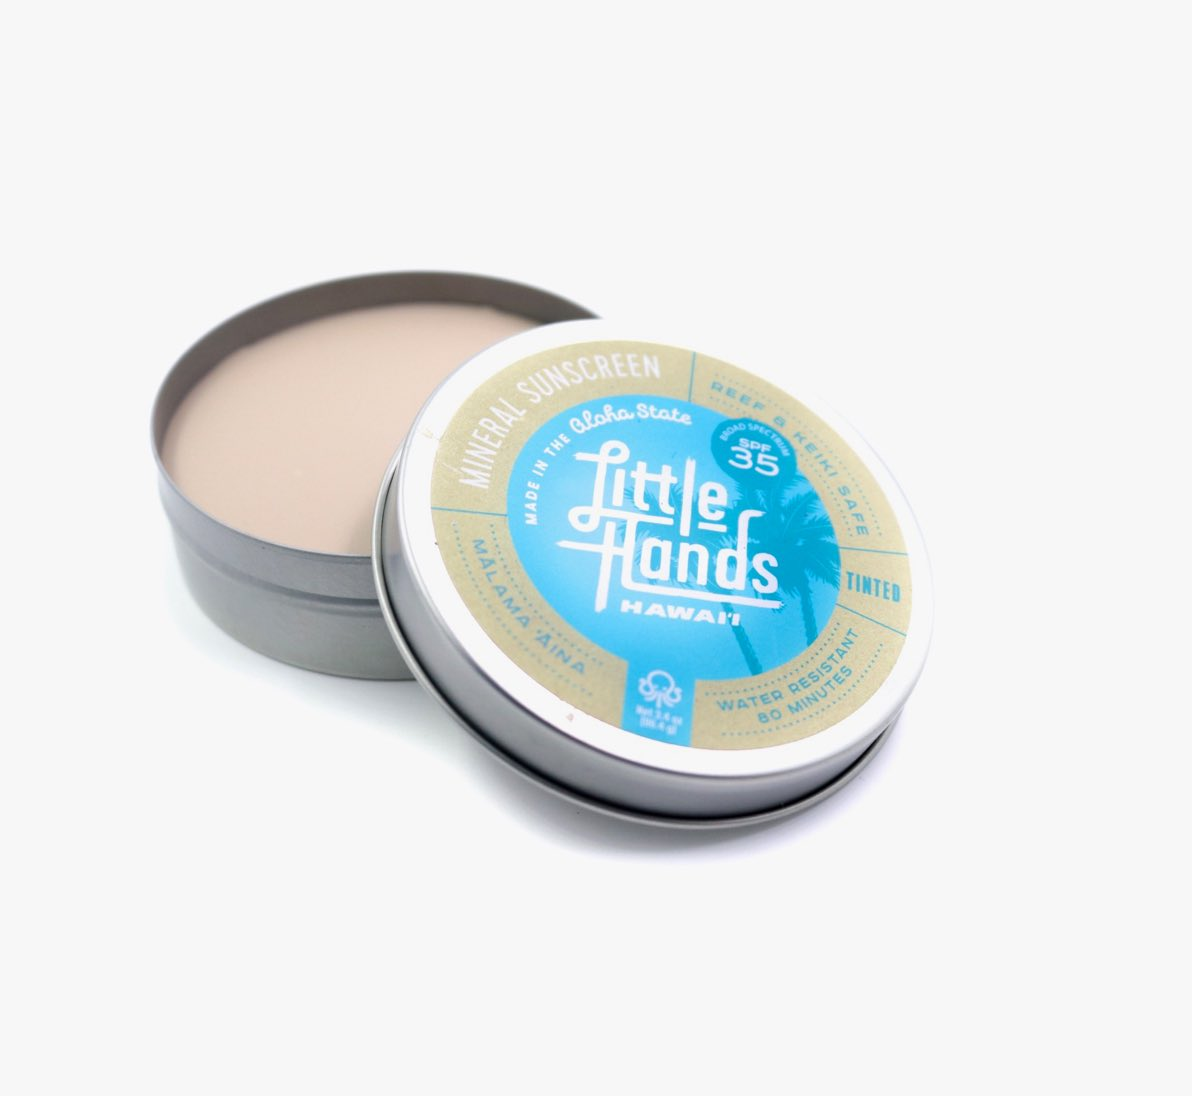 Little Hands Hawaii Body & Face Mineral Sunscreen